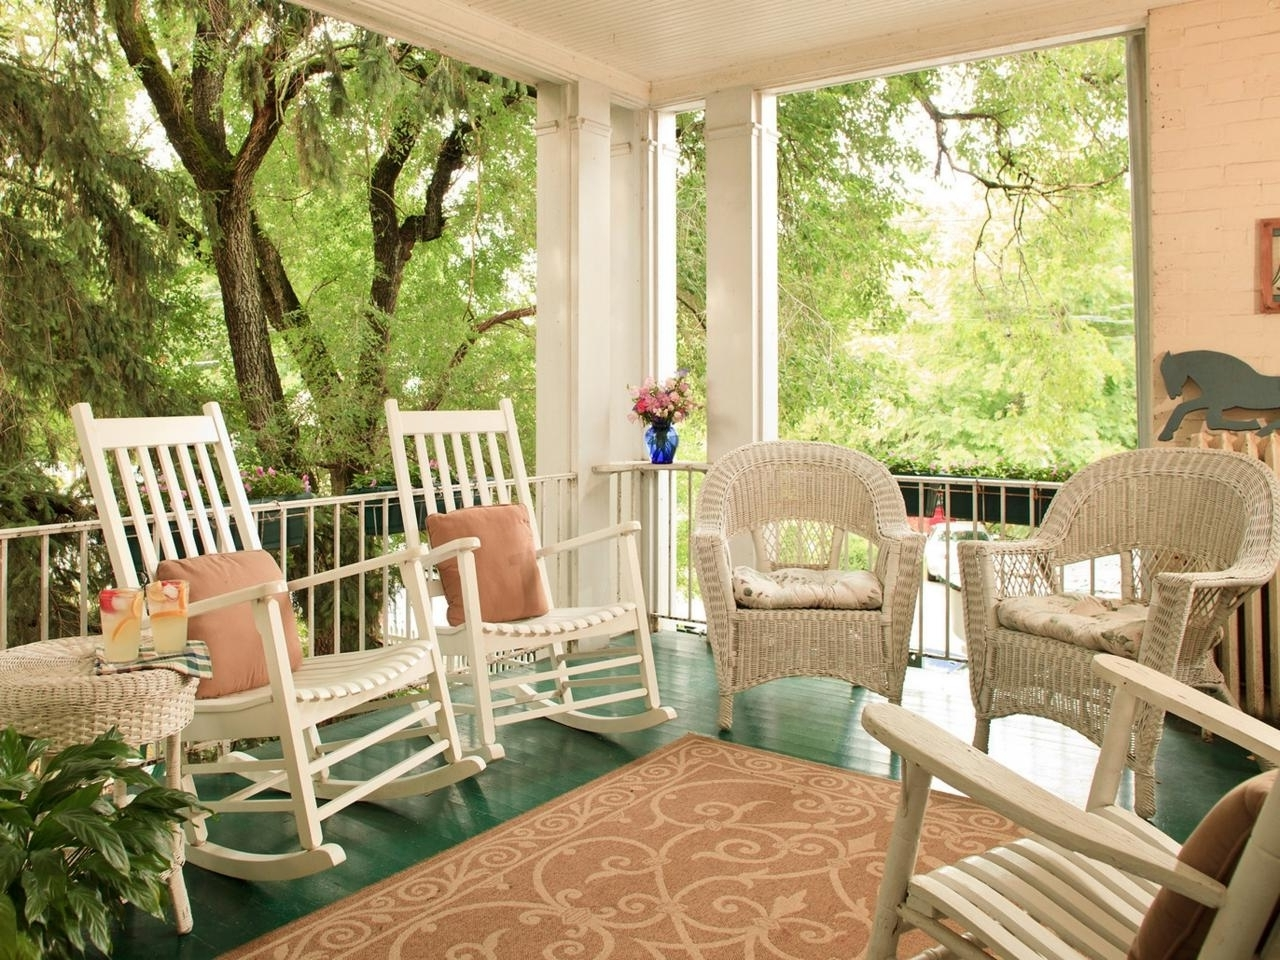 Widely Used Front Porch Rocking Chairs For Decoration Karenefoley Porch Ever Within Rocking Chairs For Front Porch (View 14 of 20)